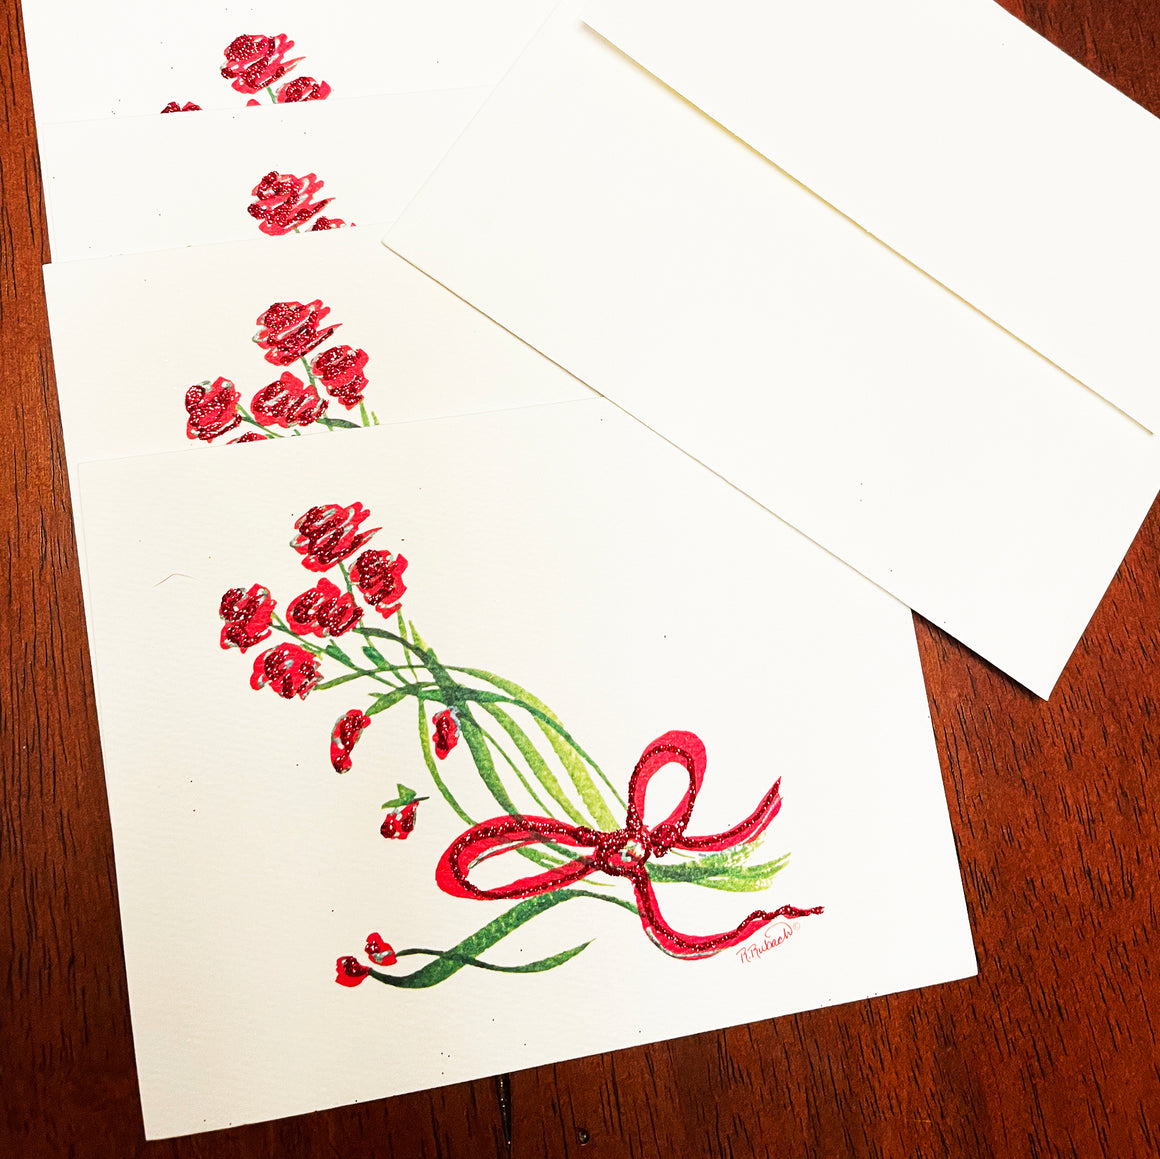 1, 6 or 12 NOTE CARDS - Red Roses Tied With A Bow